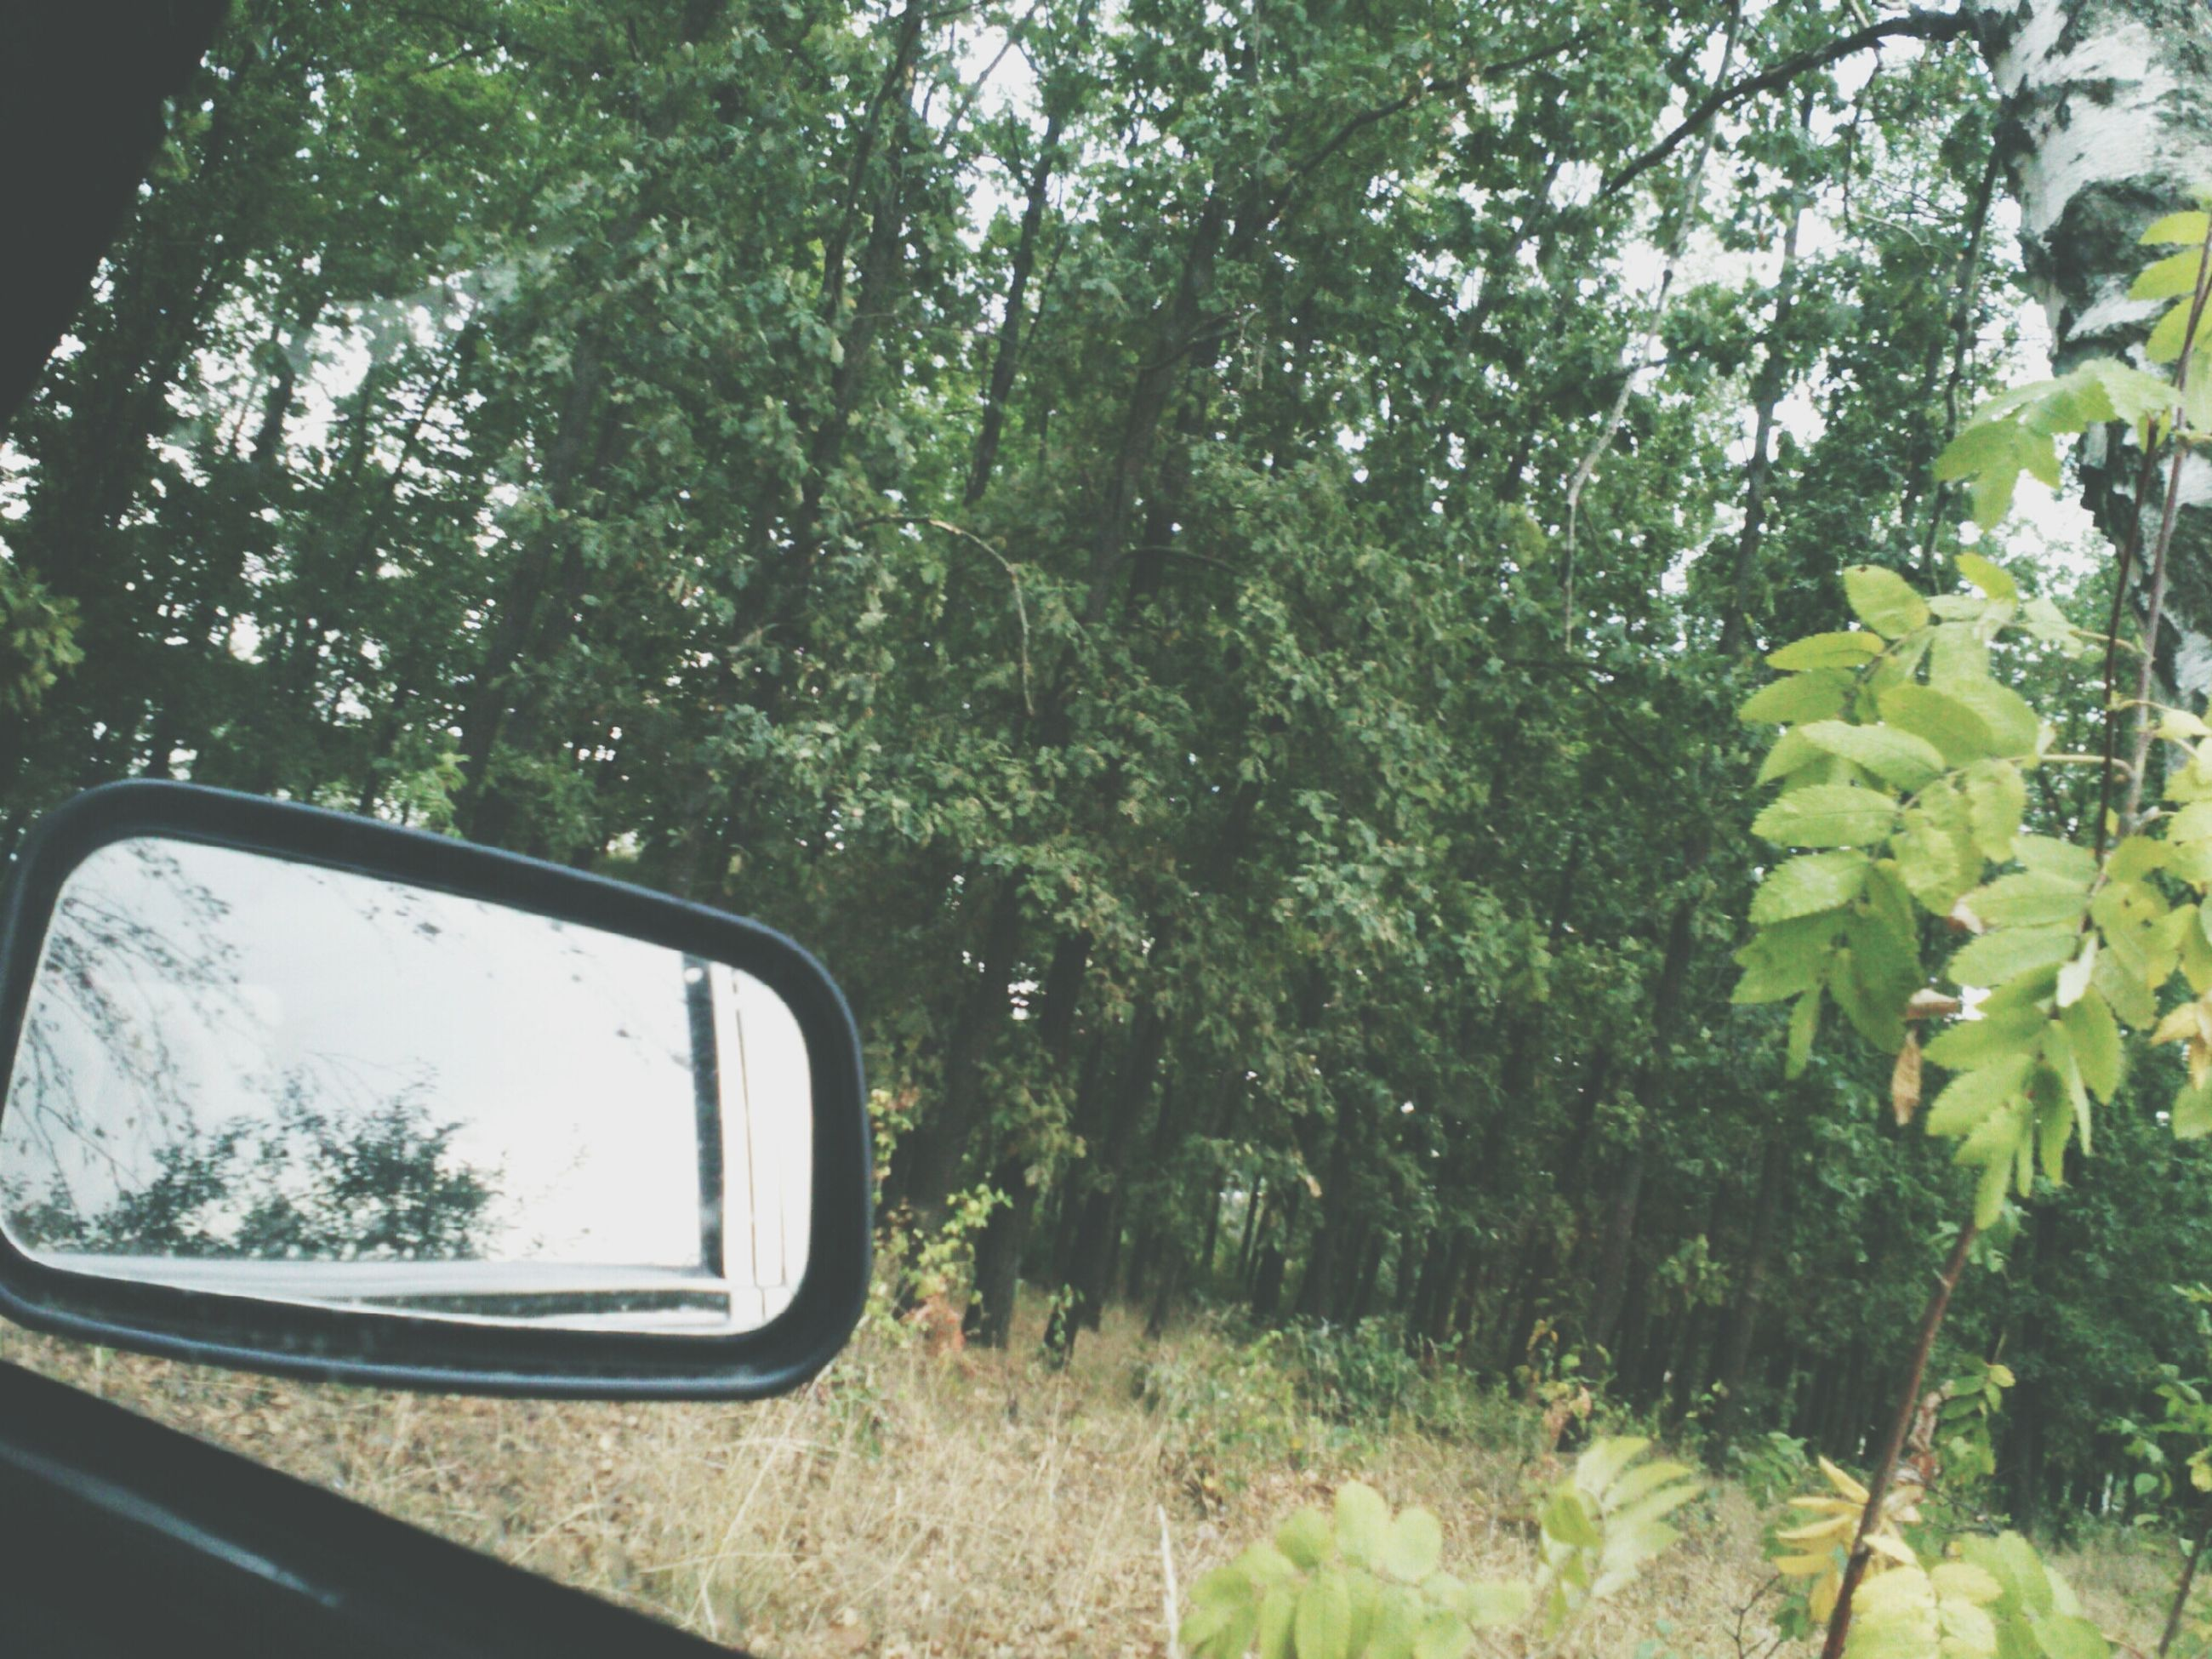 tree, transportation, car, mode of transport, land vehicle, growth, vehicle interior, nature, reflection, green color, day, side-view mirror, window, sky, glass - material, transparent, travel, close-up, outdoors, plant